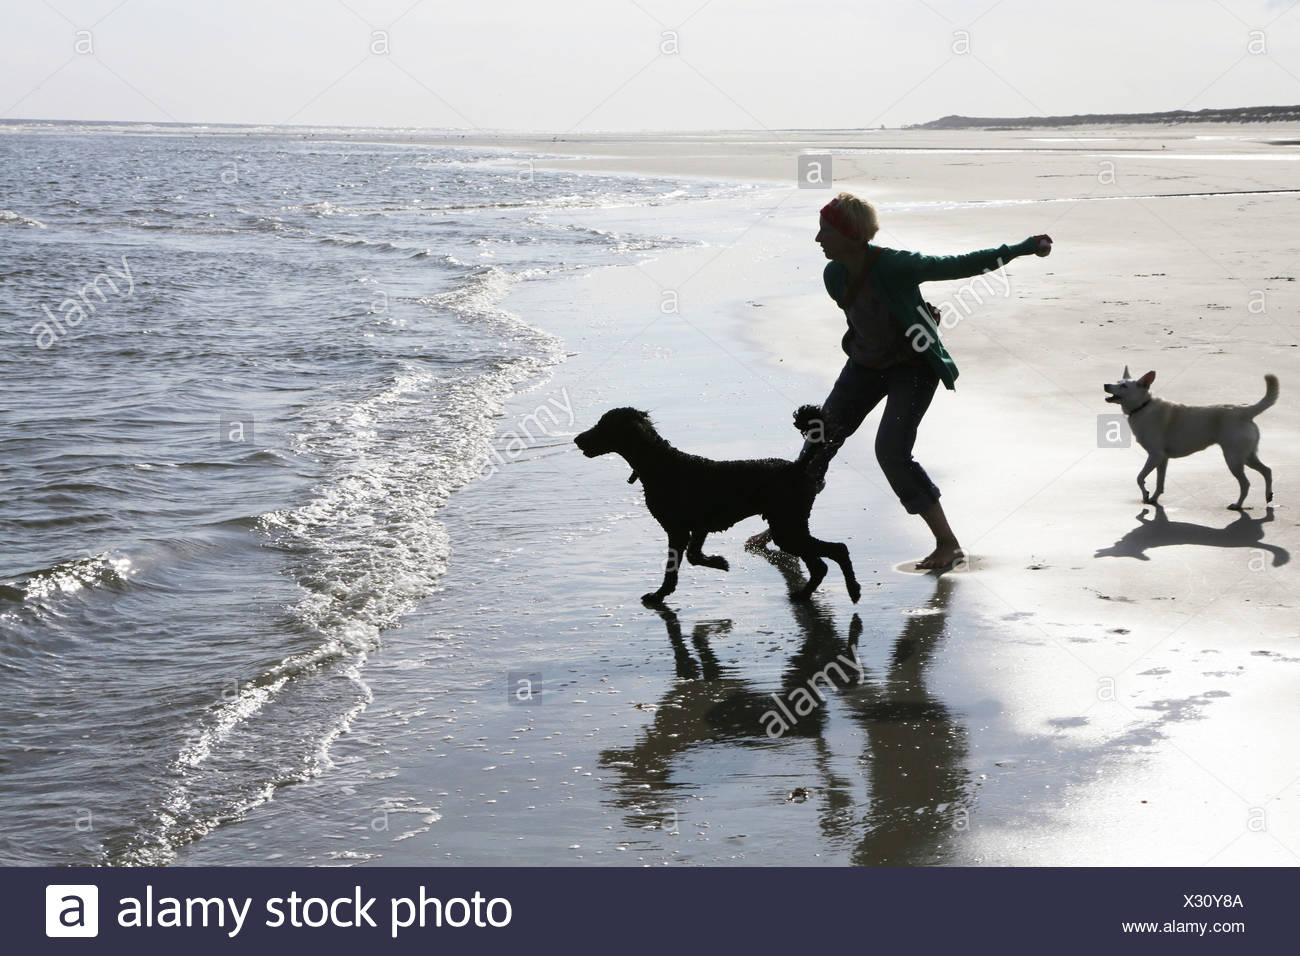 Germany, Lower Saxony, East Frisia, Langeoog, woman playing with her dogs at the beach - Stock Image